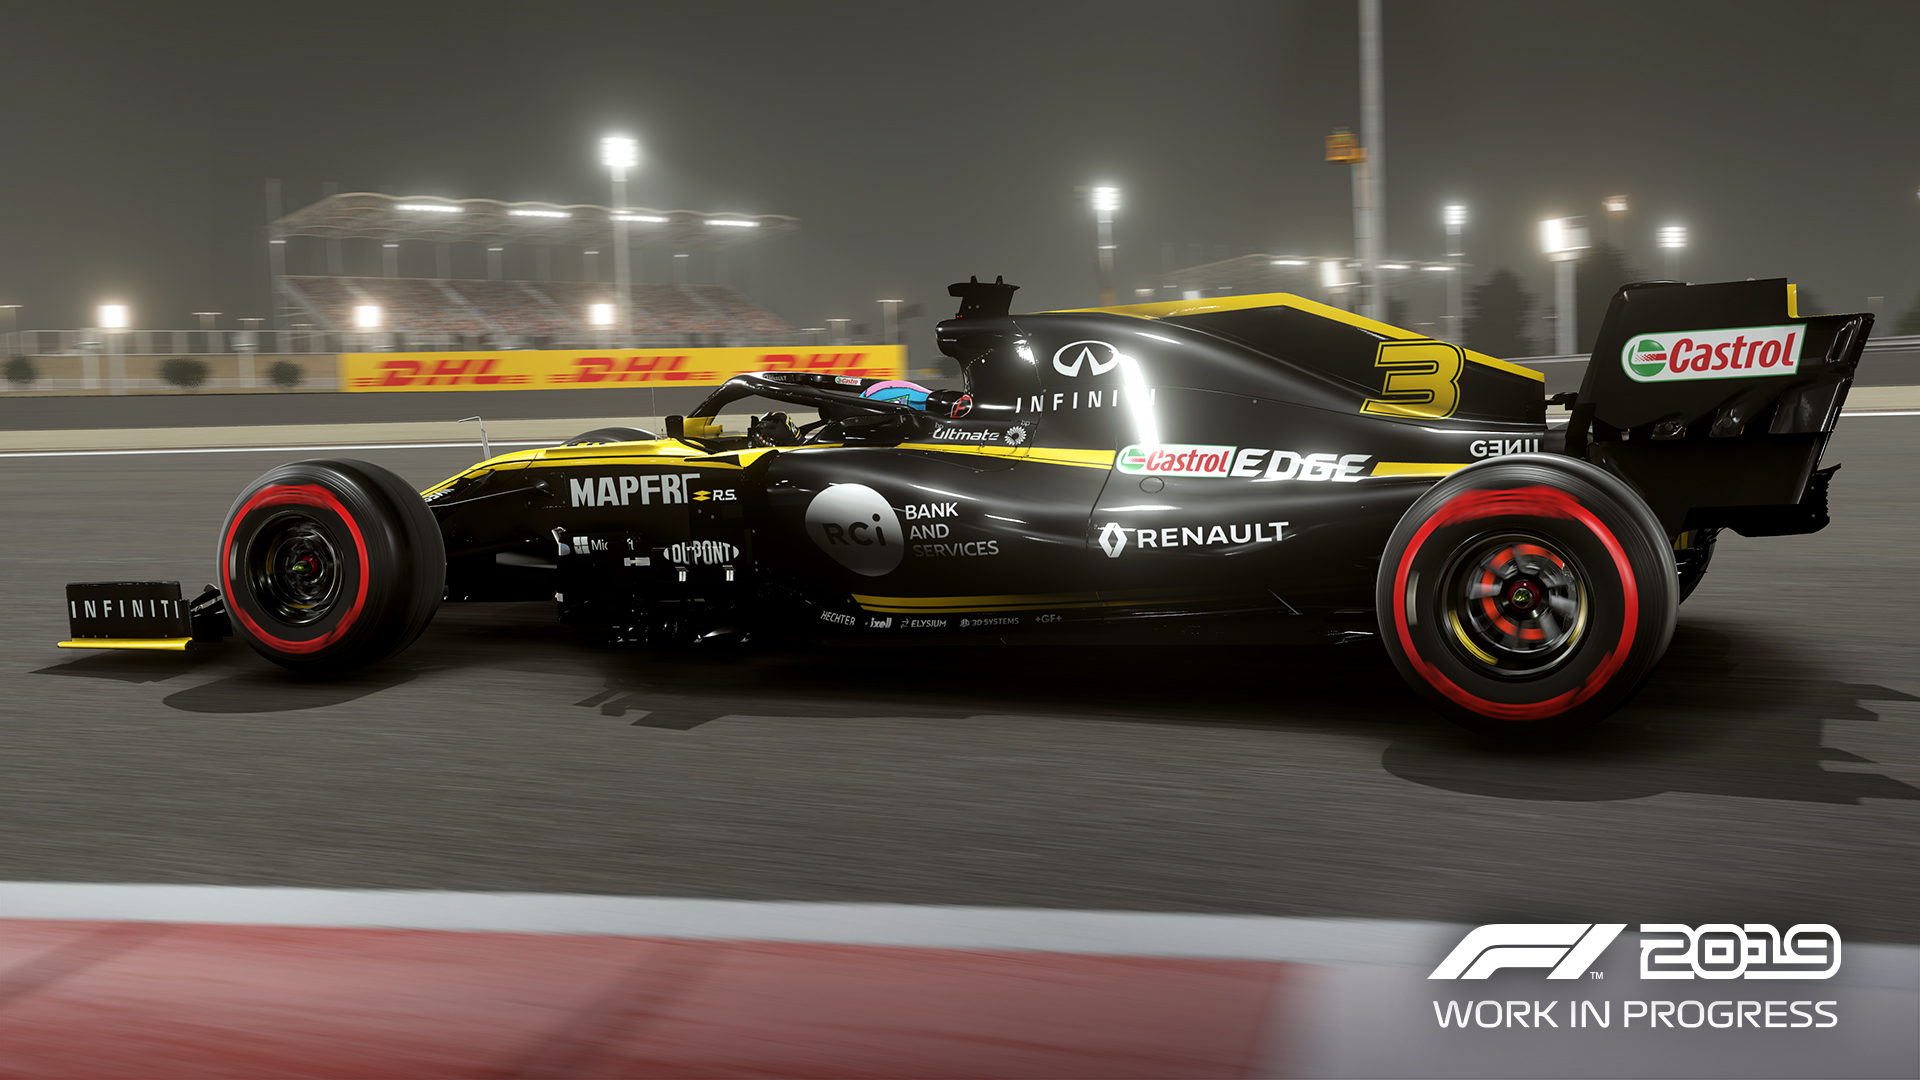 Check out the latest F1 2019 images including boxart ...